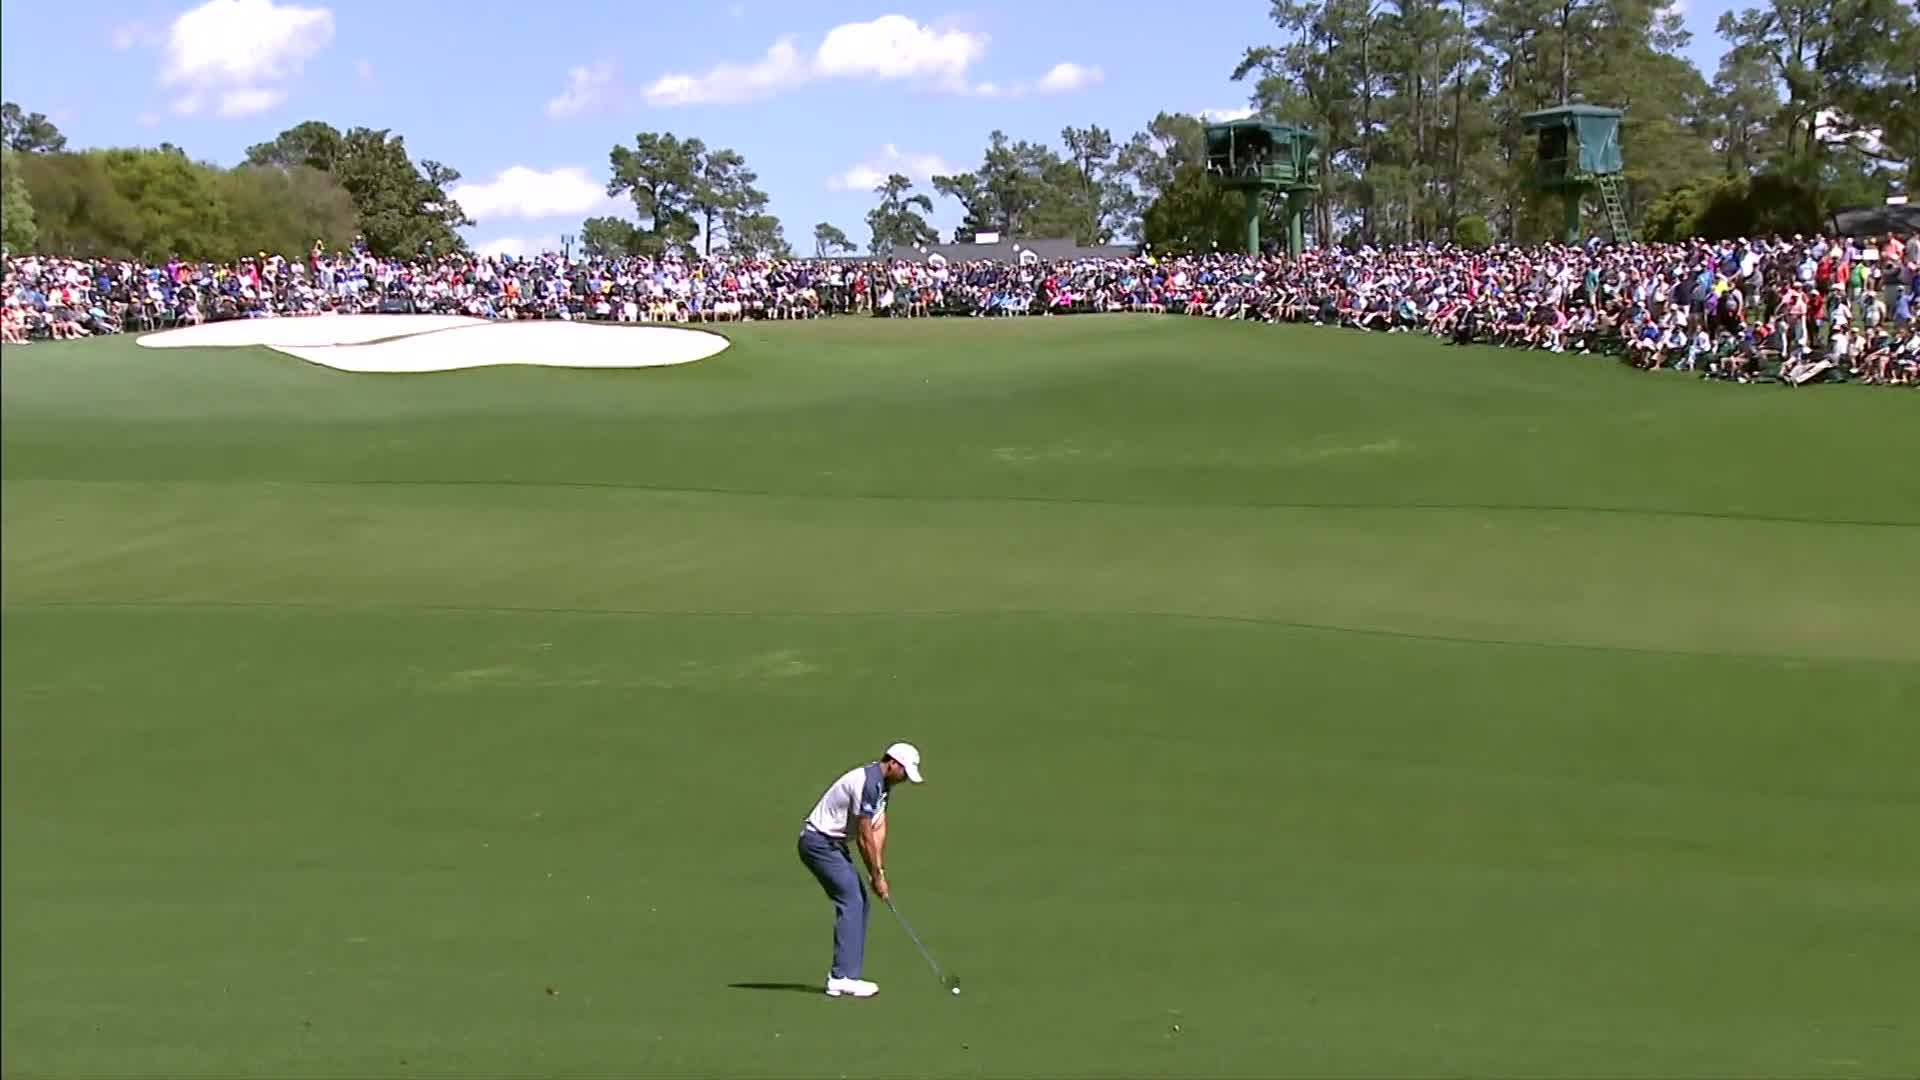 Watch a selection of the best shots from the opening round Masters